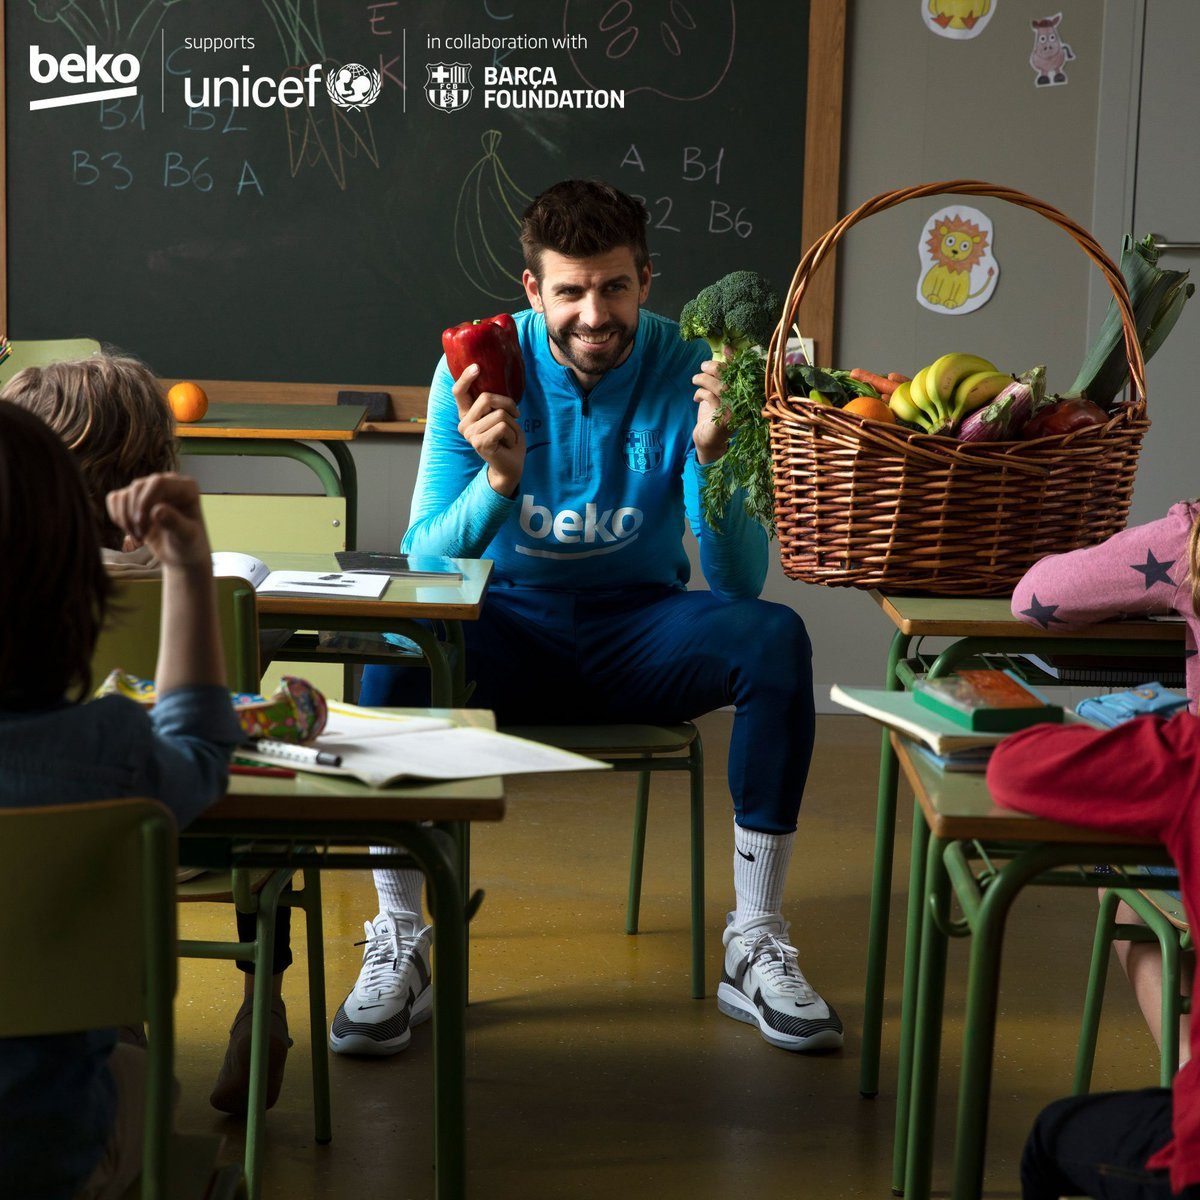 Every child has the right to #EatLikeAPro but in todays UNICEF State of The World's Children report almost 45% of children are not fed fruits or veggies. That is why with @FCBarcelona, we are partnering with @UNICEF to raise awareness of healthy eating habits. https://twitter.com/UNICEF/status/1183896529741996032…